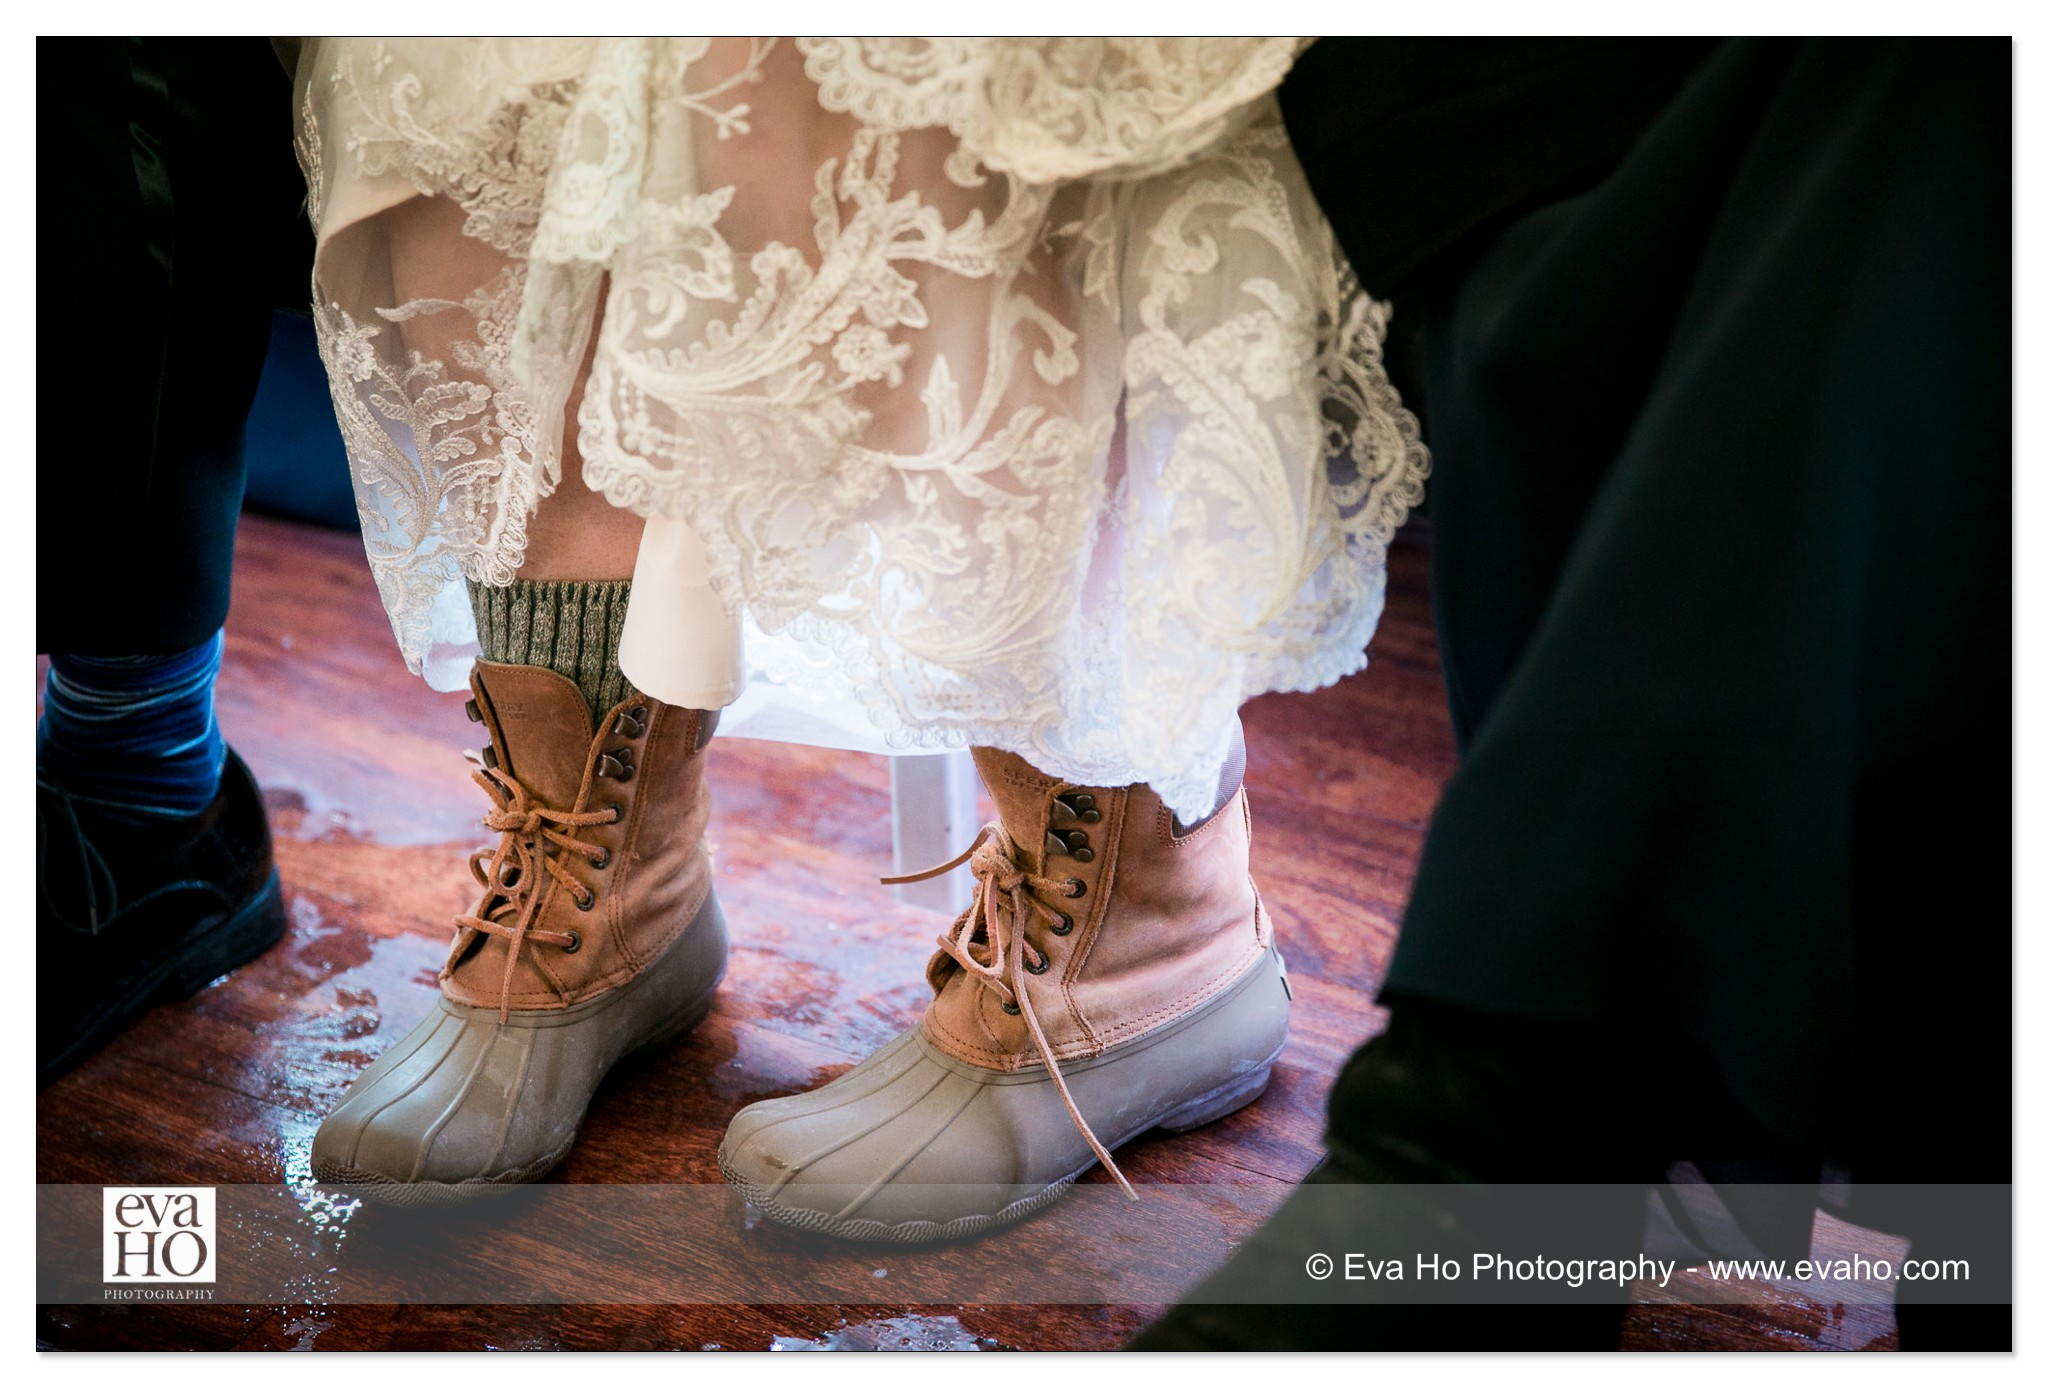 Bride in snowboots